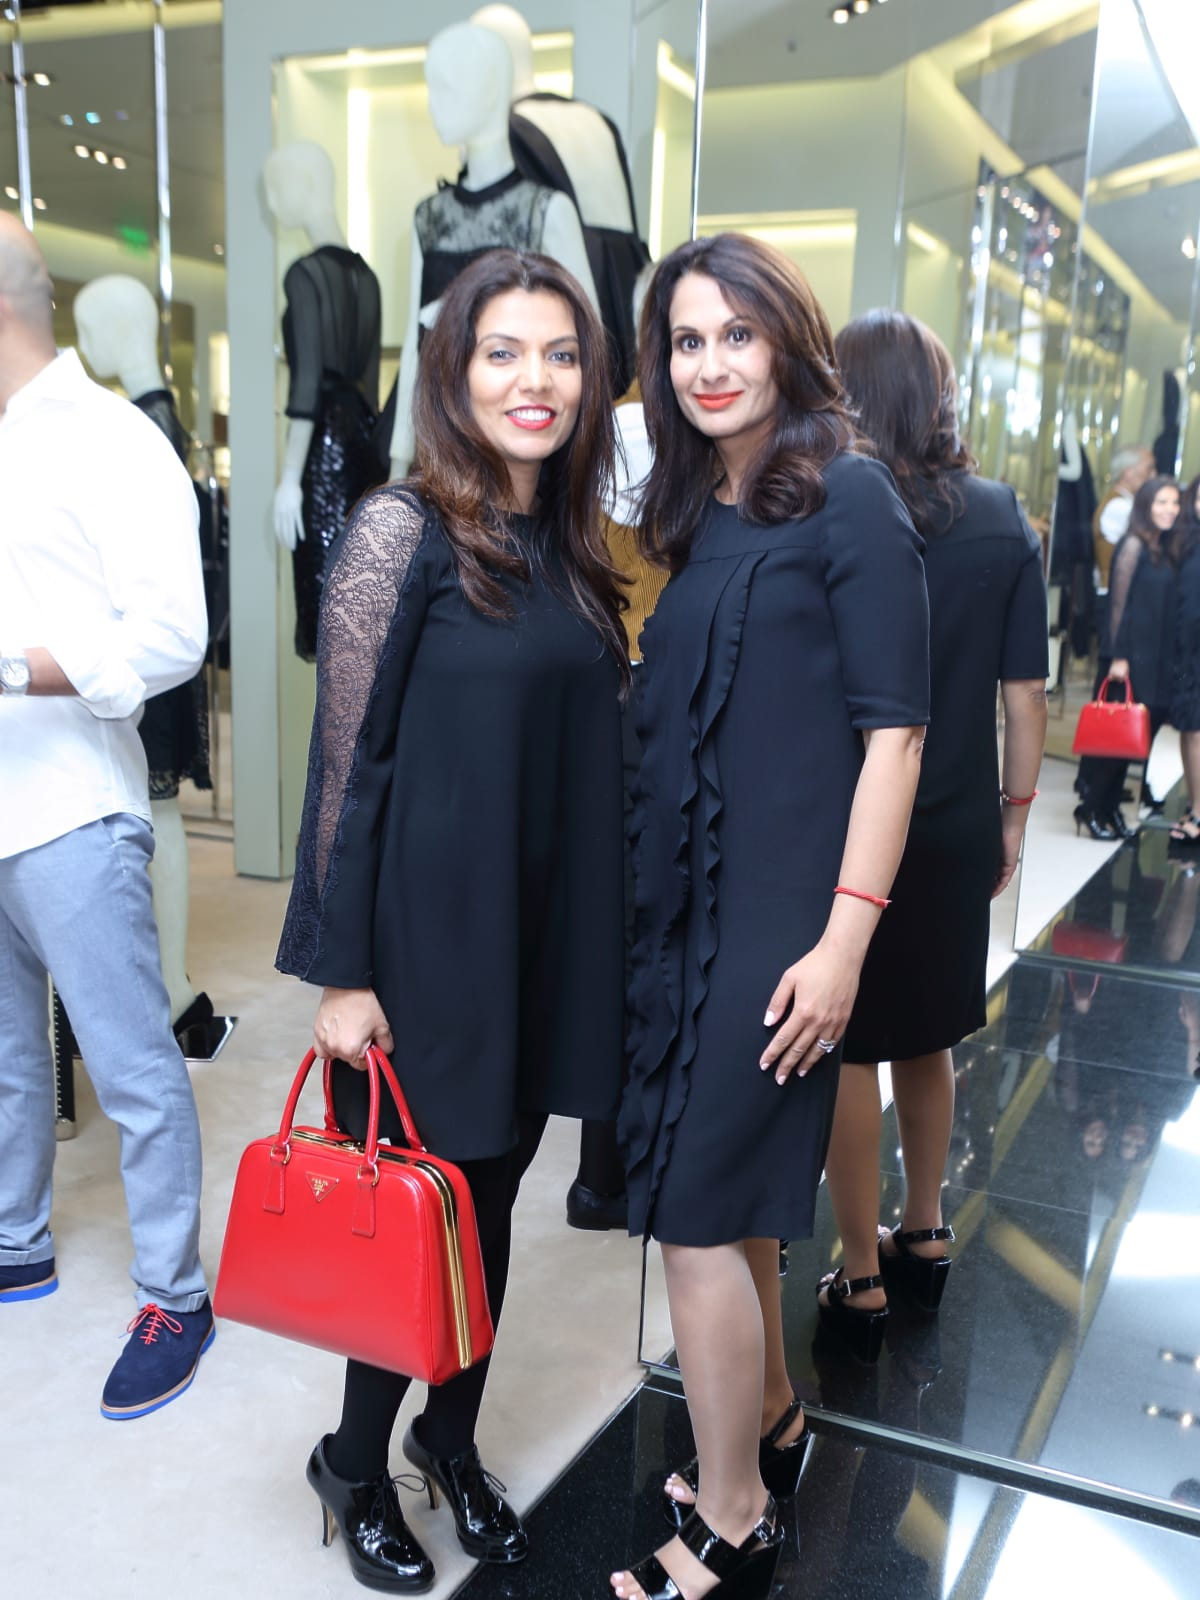 Mona Khan, Jyoti Kohli at APAHA kickoff party at Prada